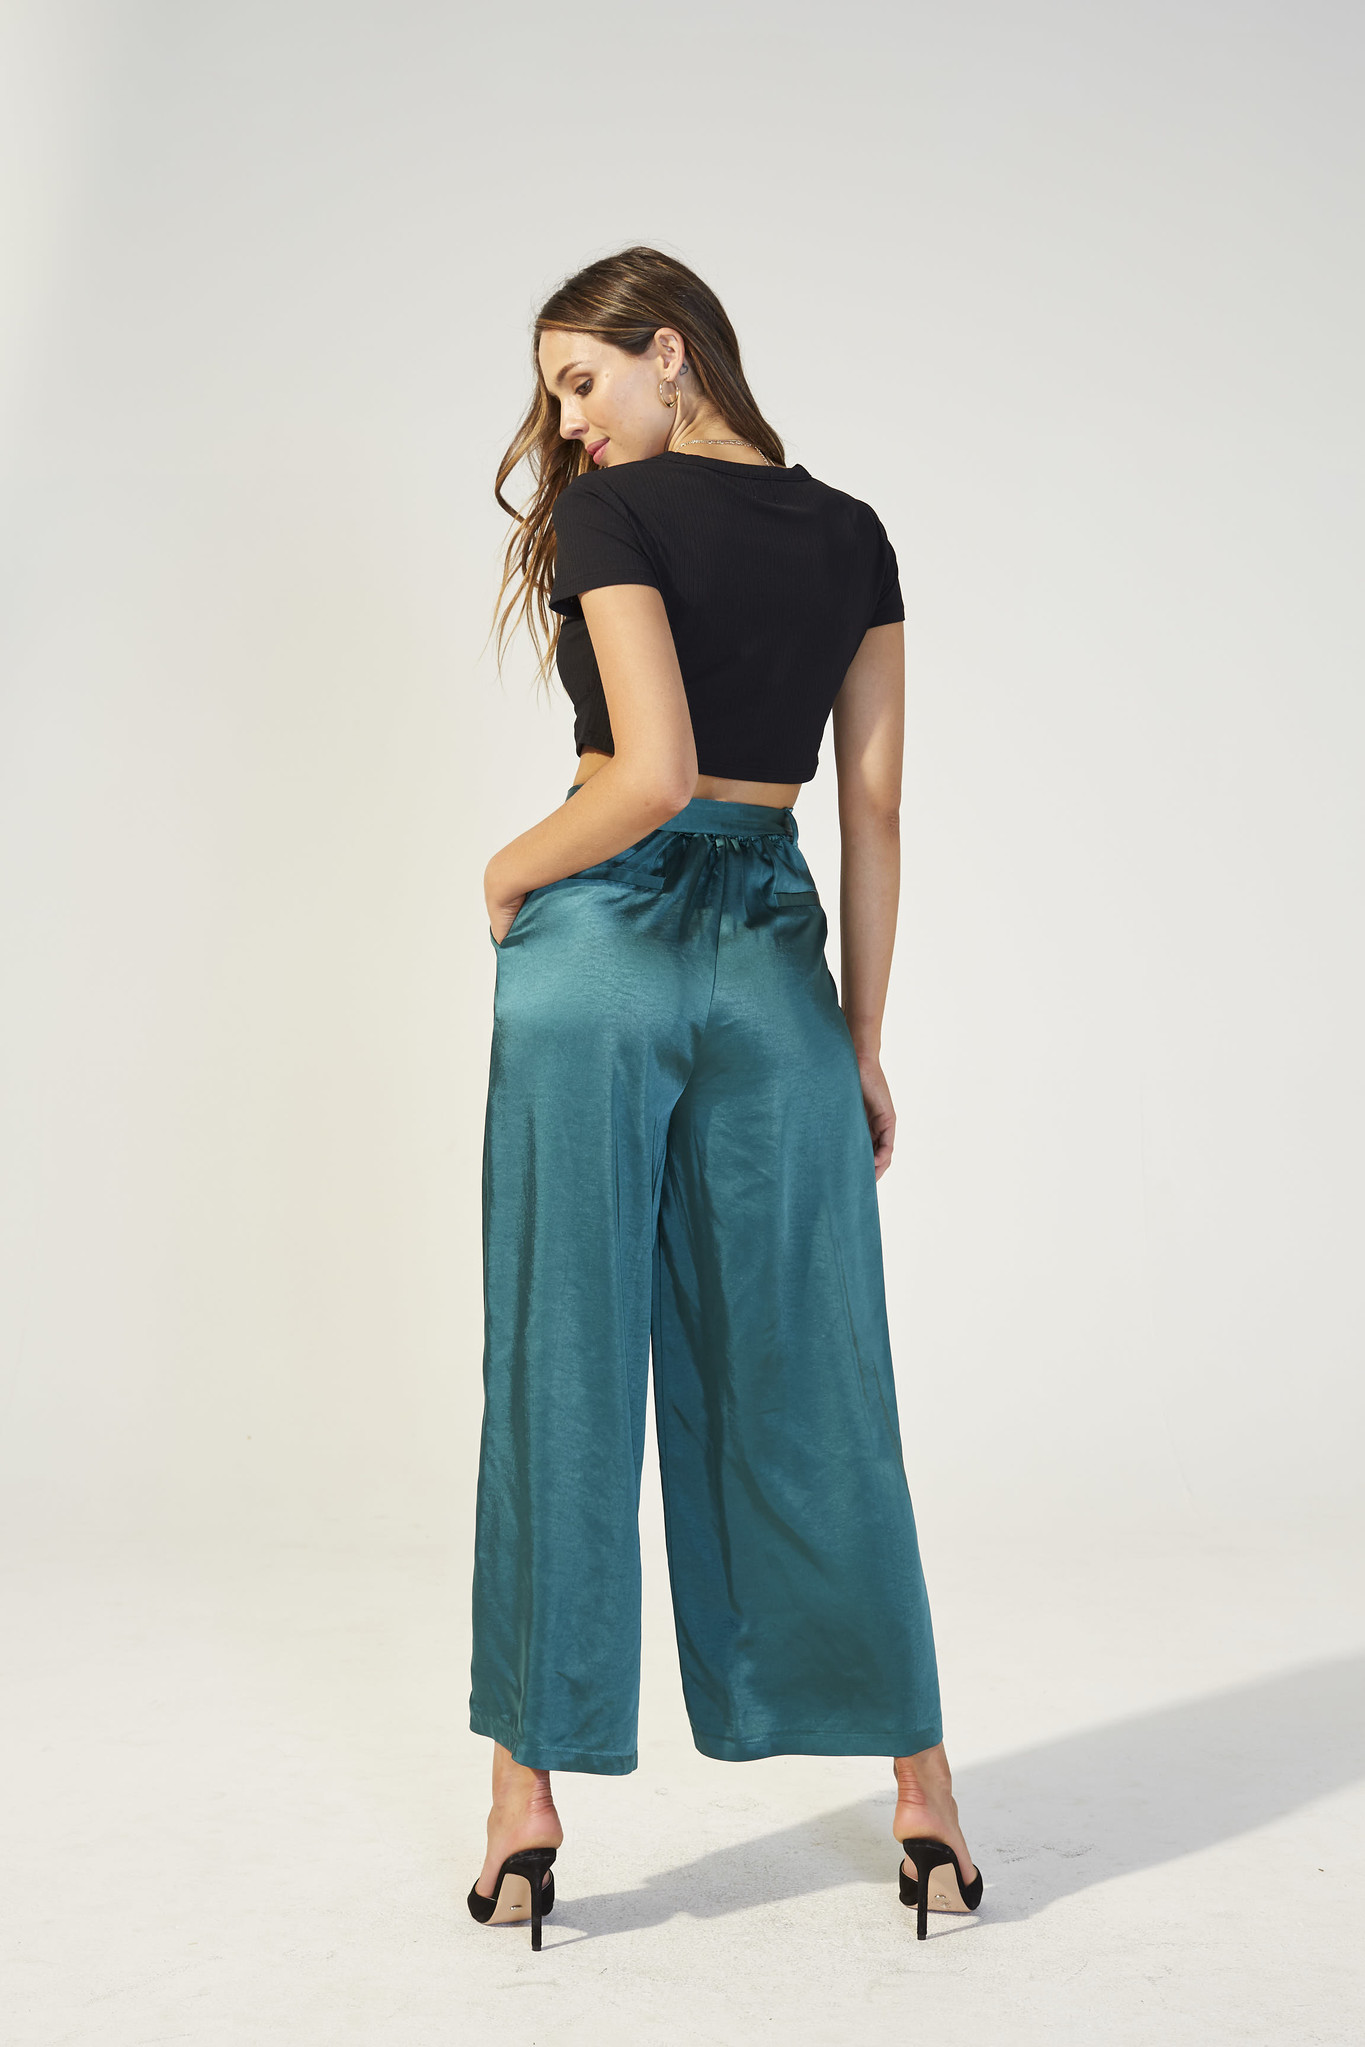 Mink Pink Freedom Lover Satin Pant